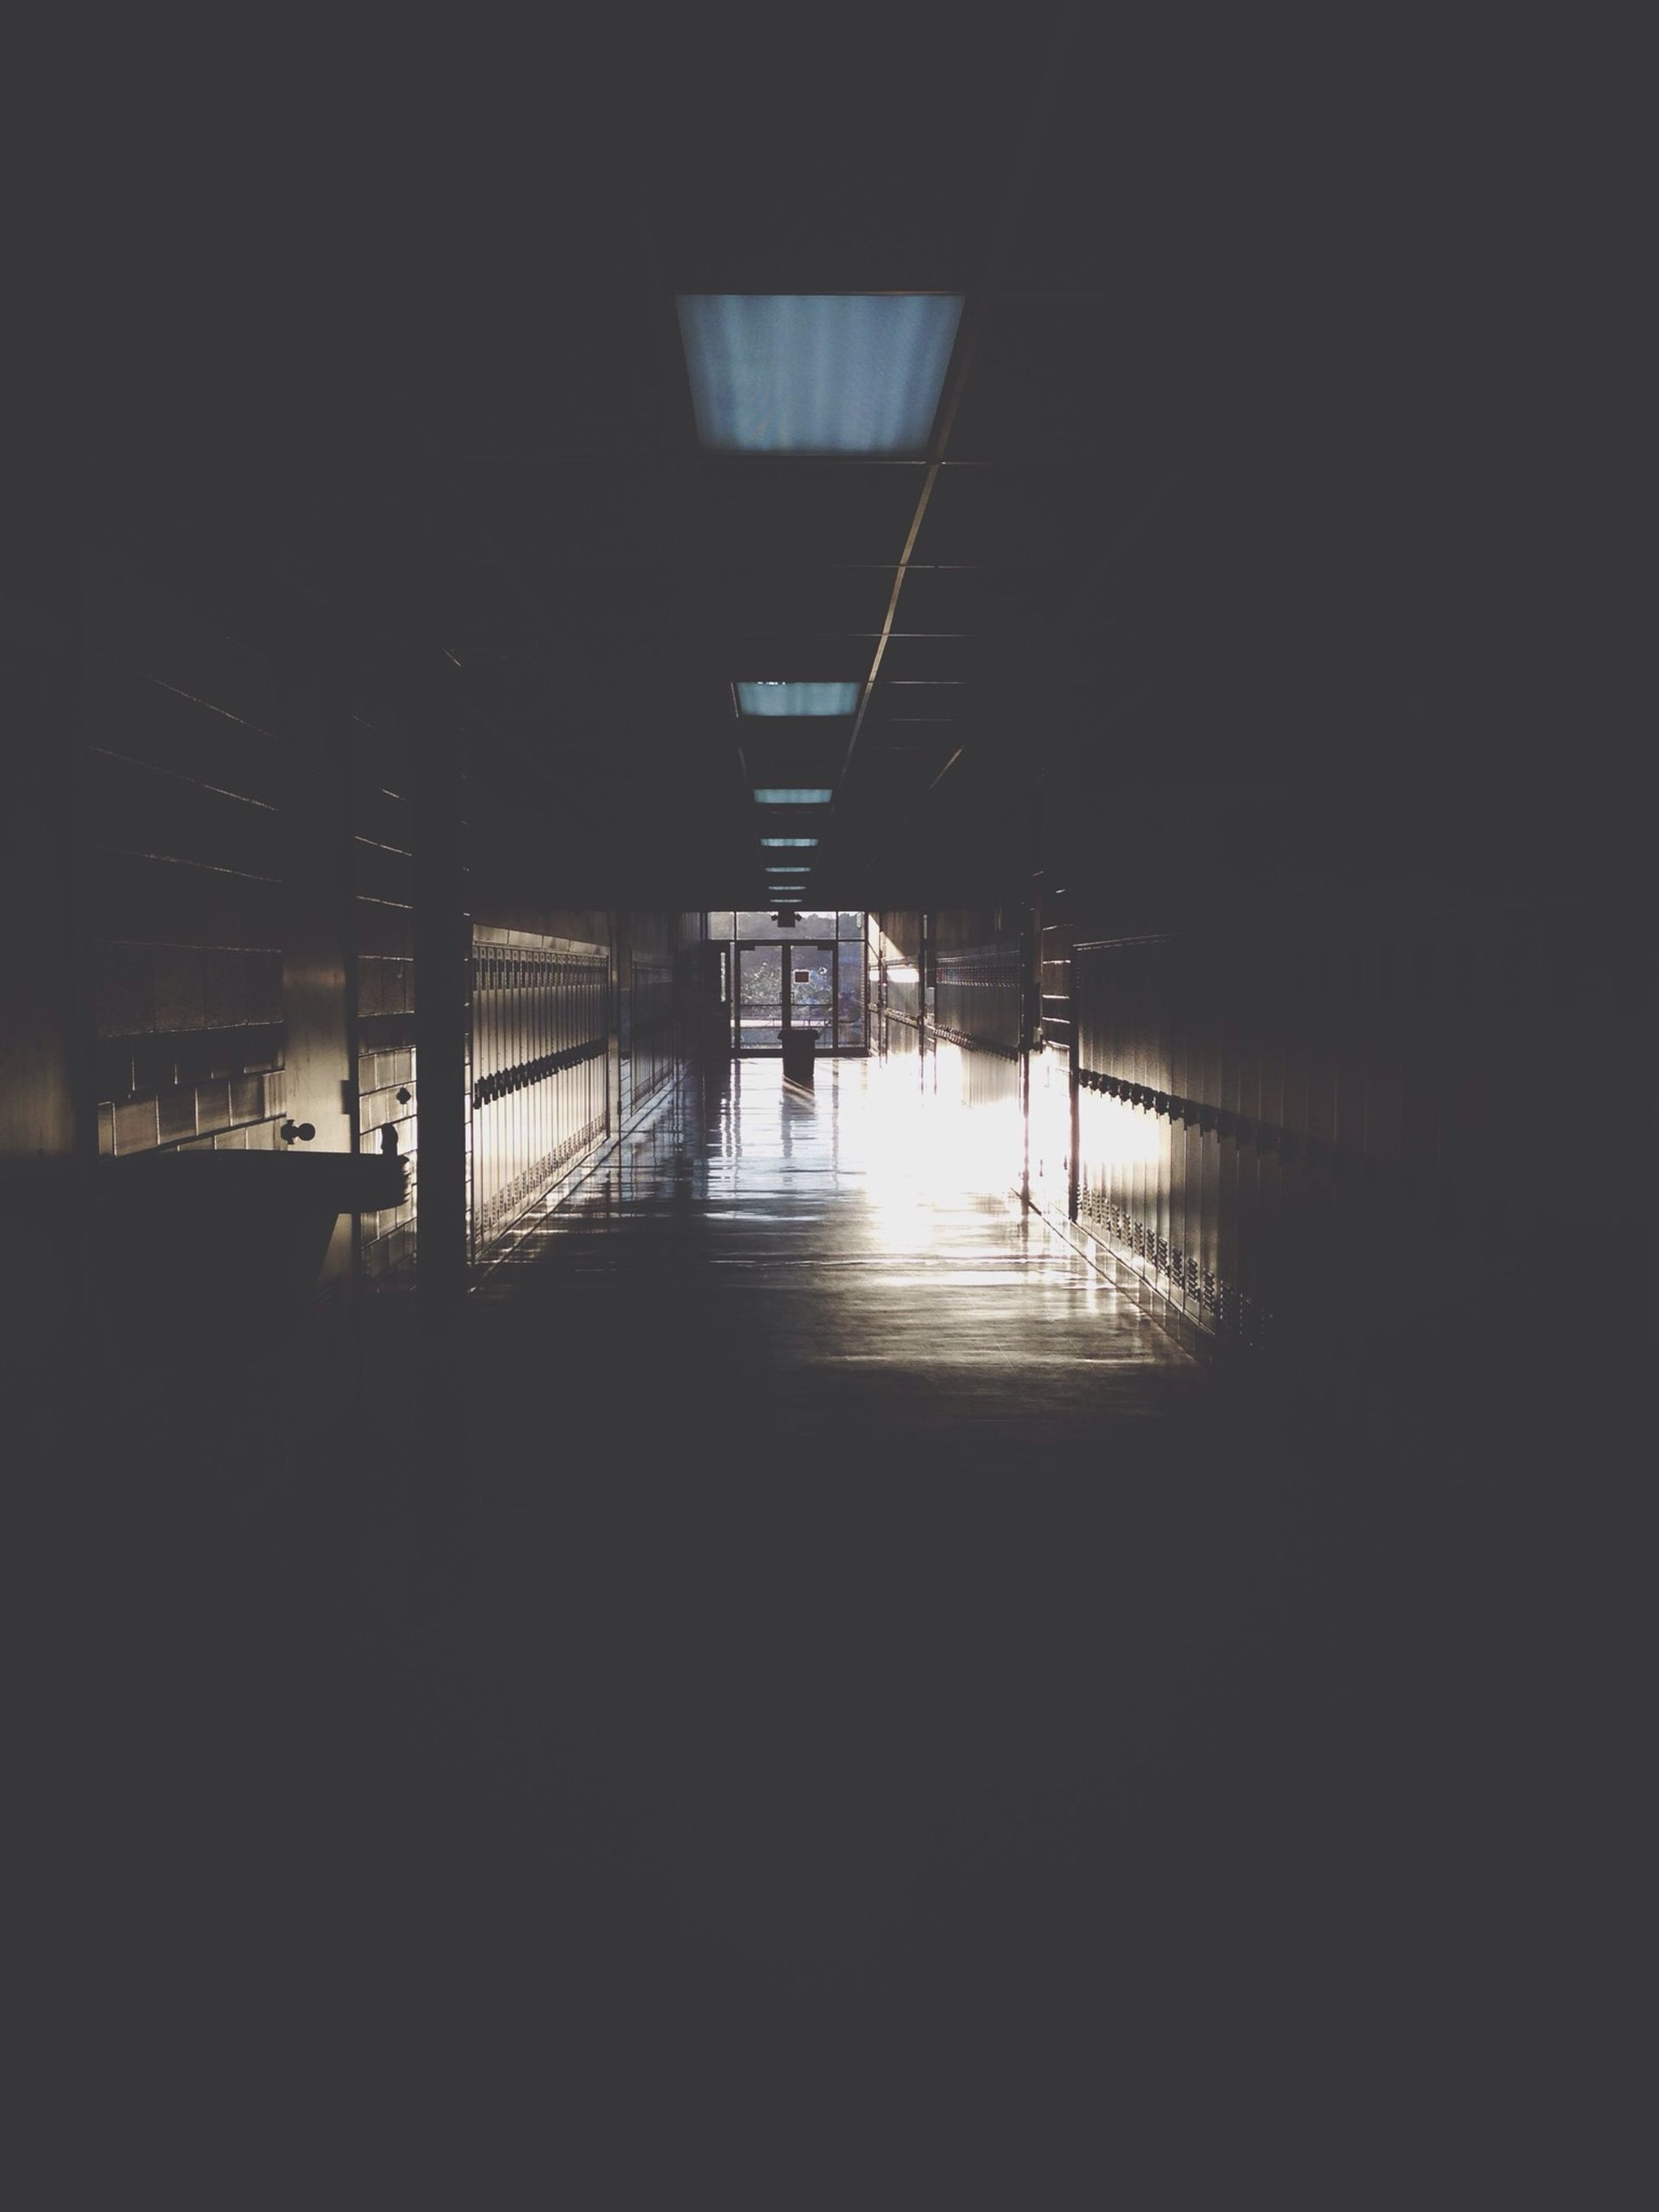 built structure, architecture, indoors, illuminated, dark, empty, night, silhouette, water, sunlight, reflection, sea, no people, absence, copy space, architectural column, the way forward, flooring, shadow, clear sky